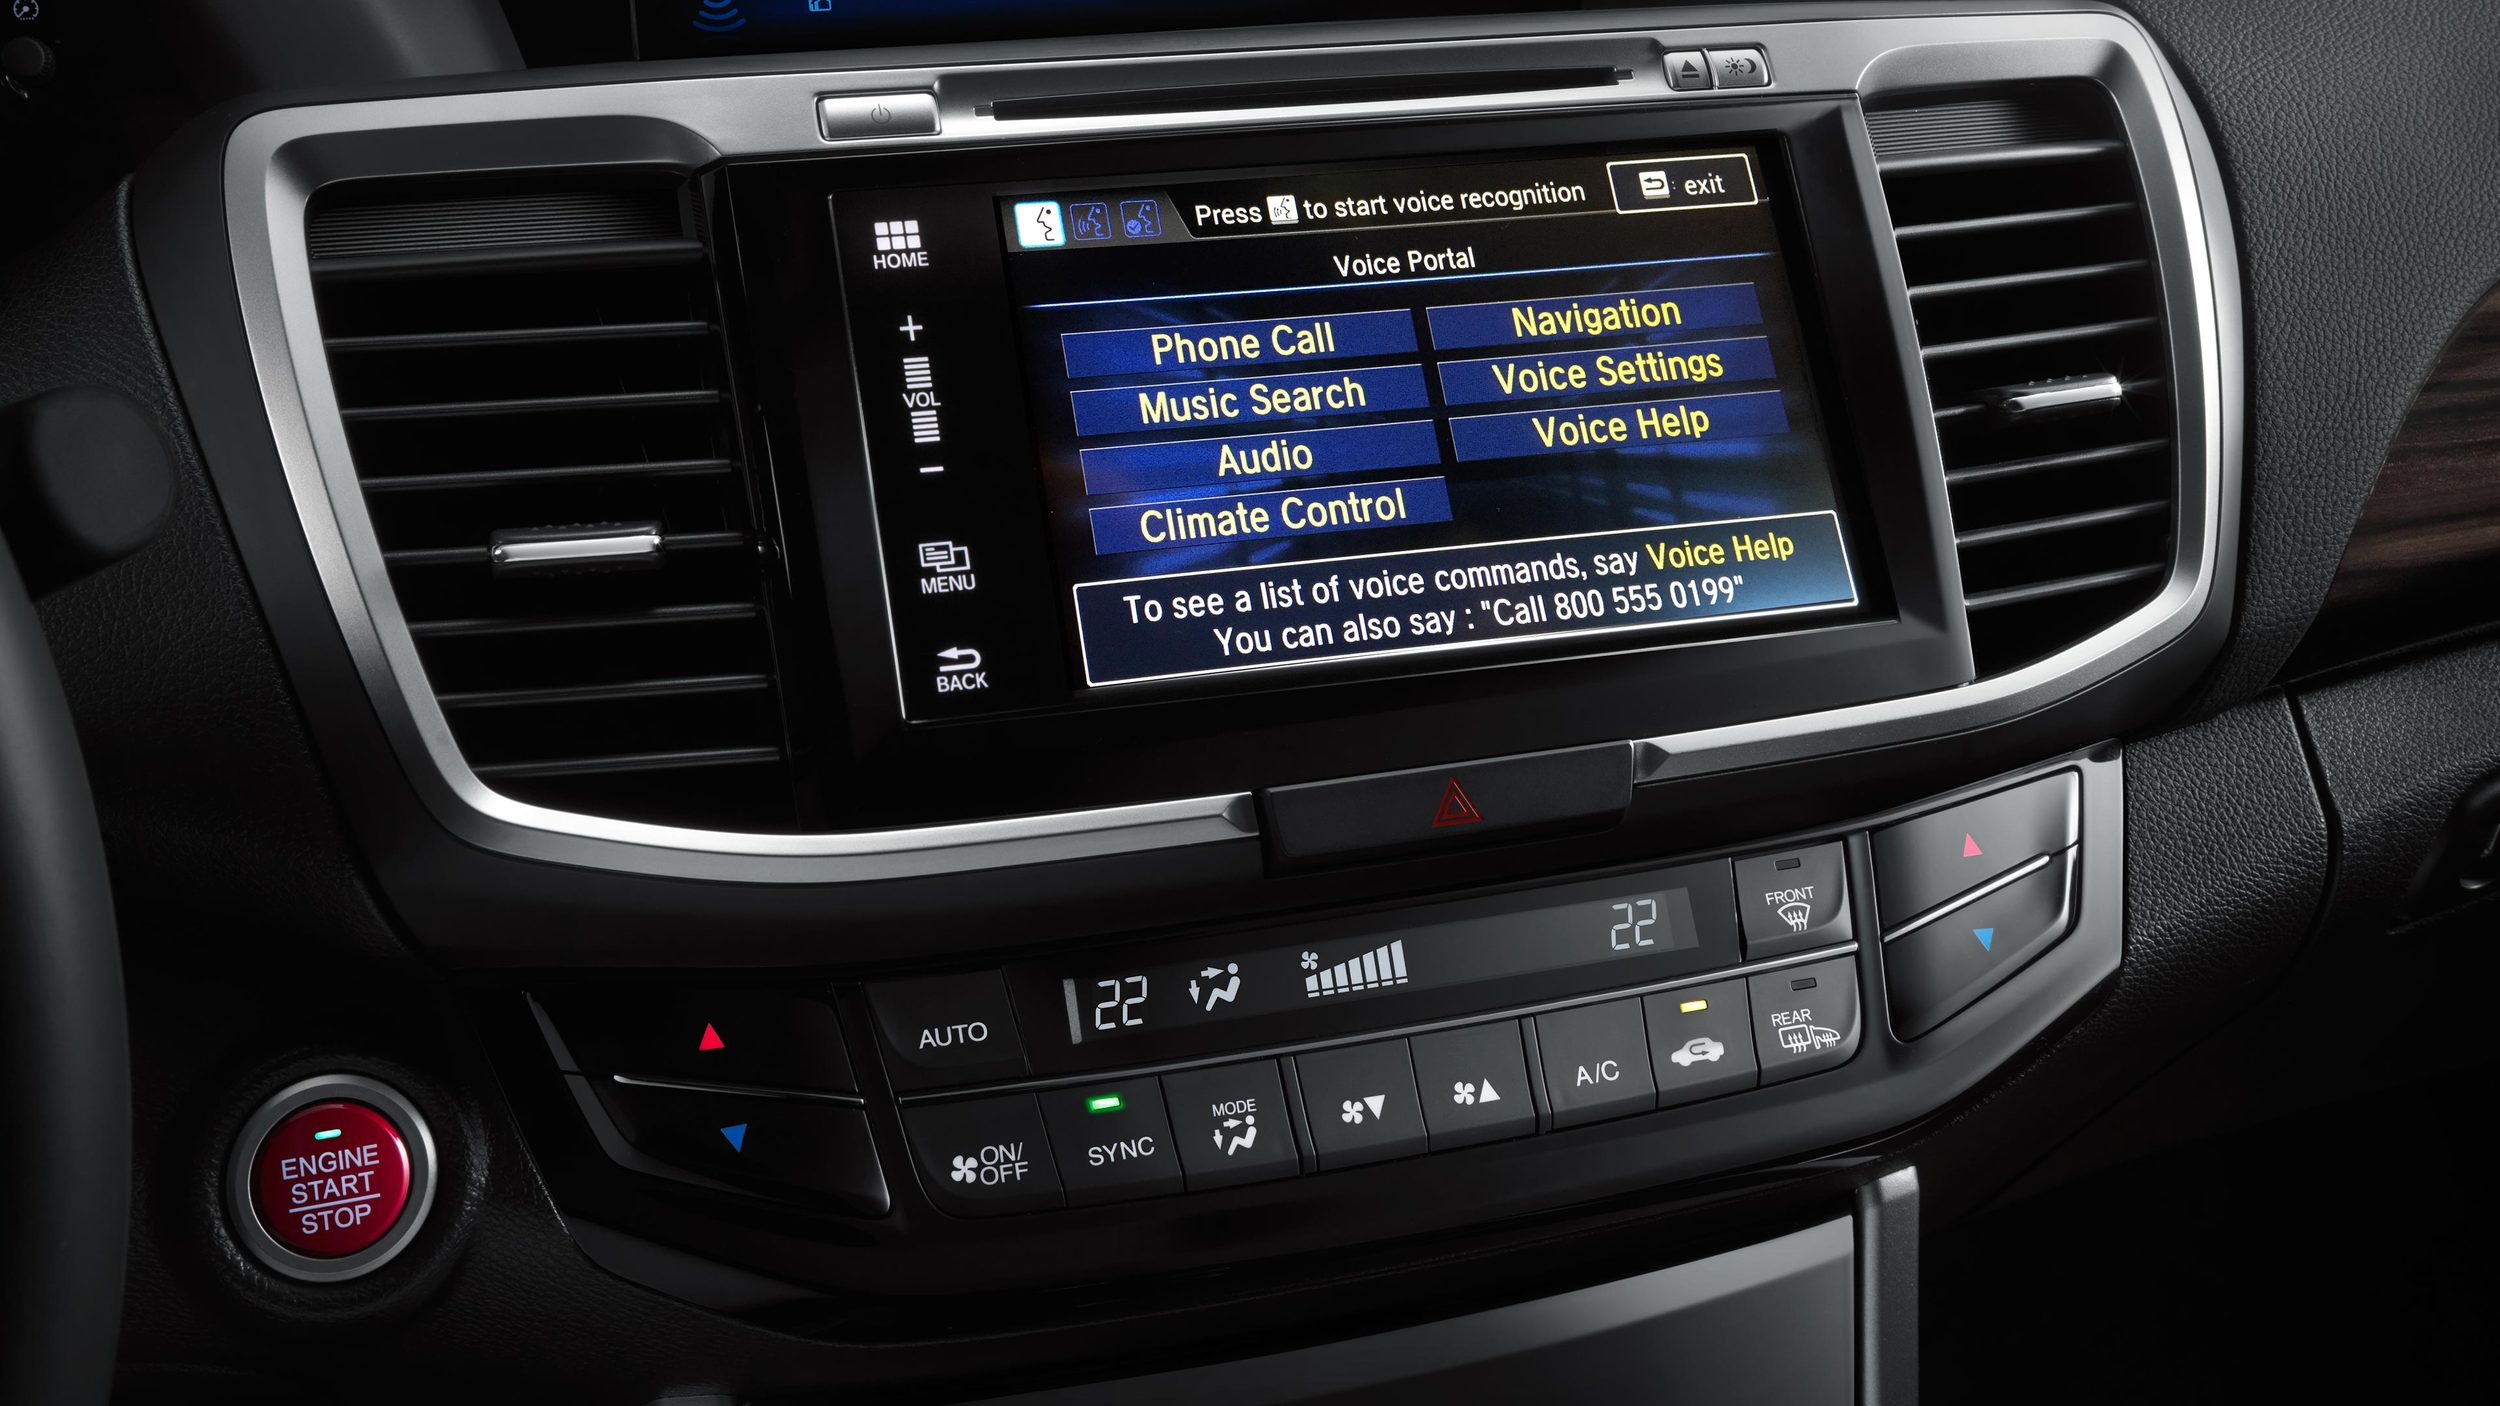 2016 Honda Accord center console infotainment system